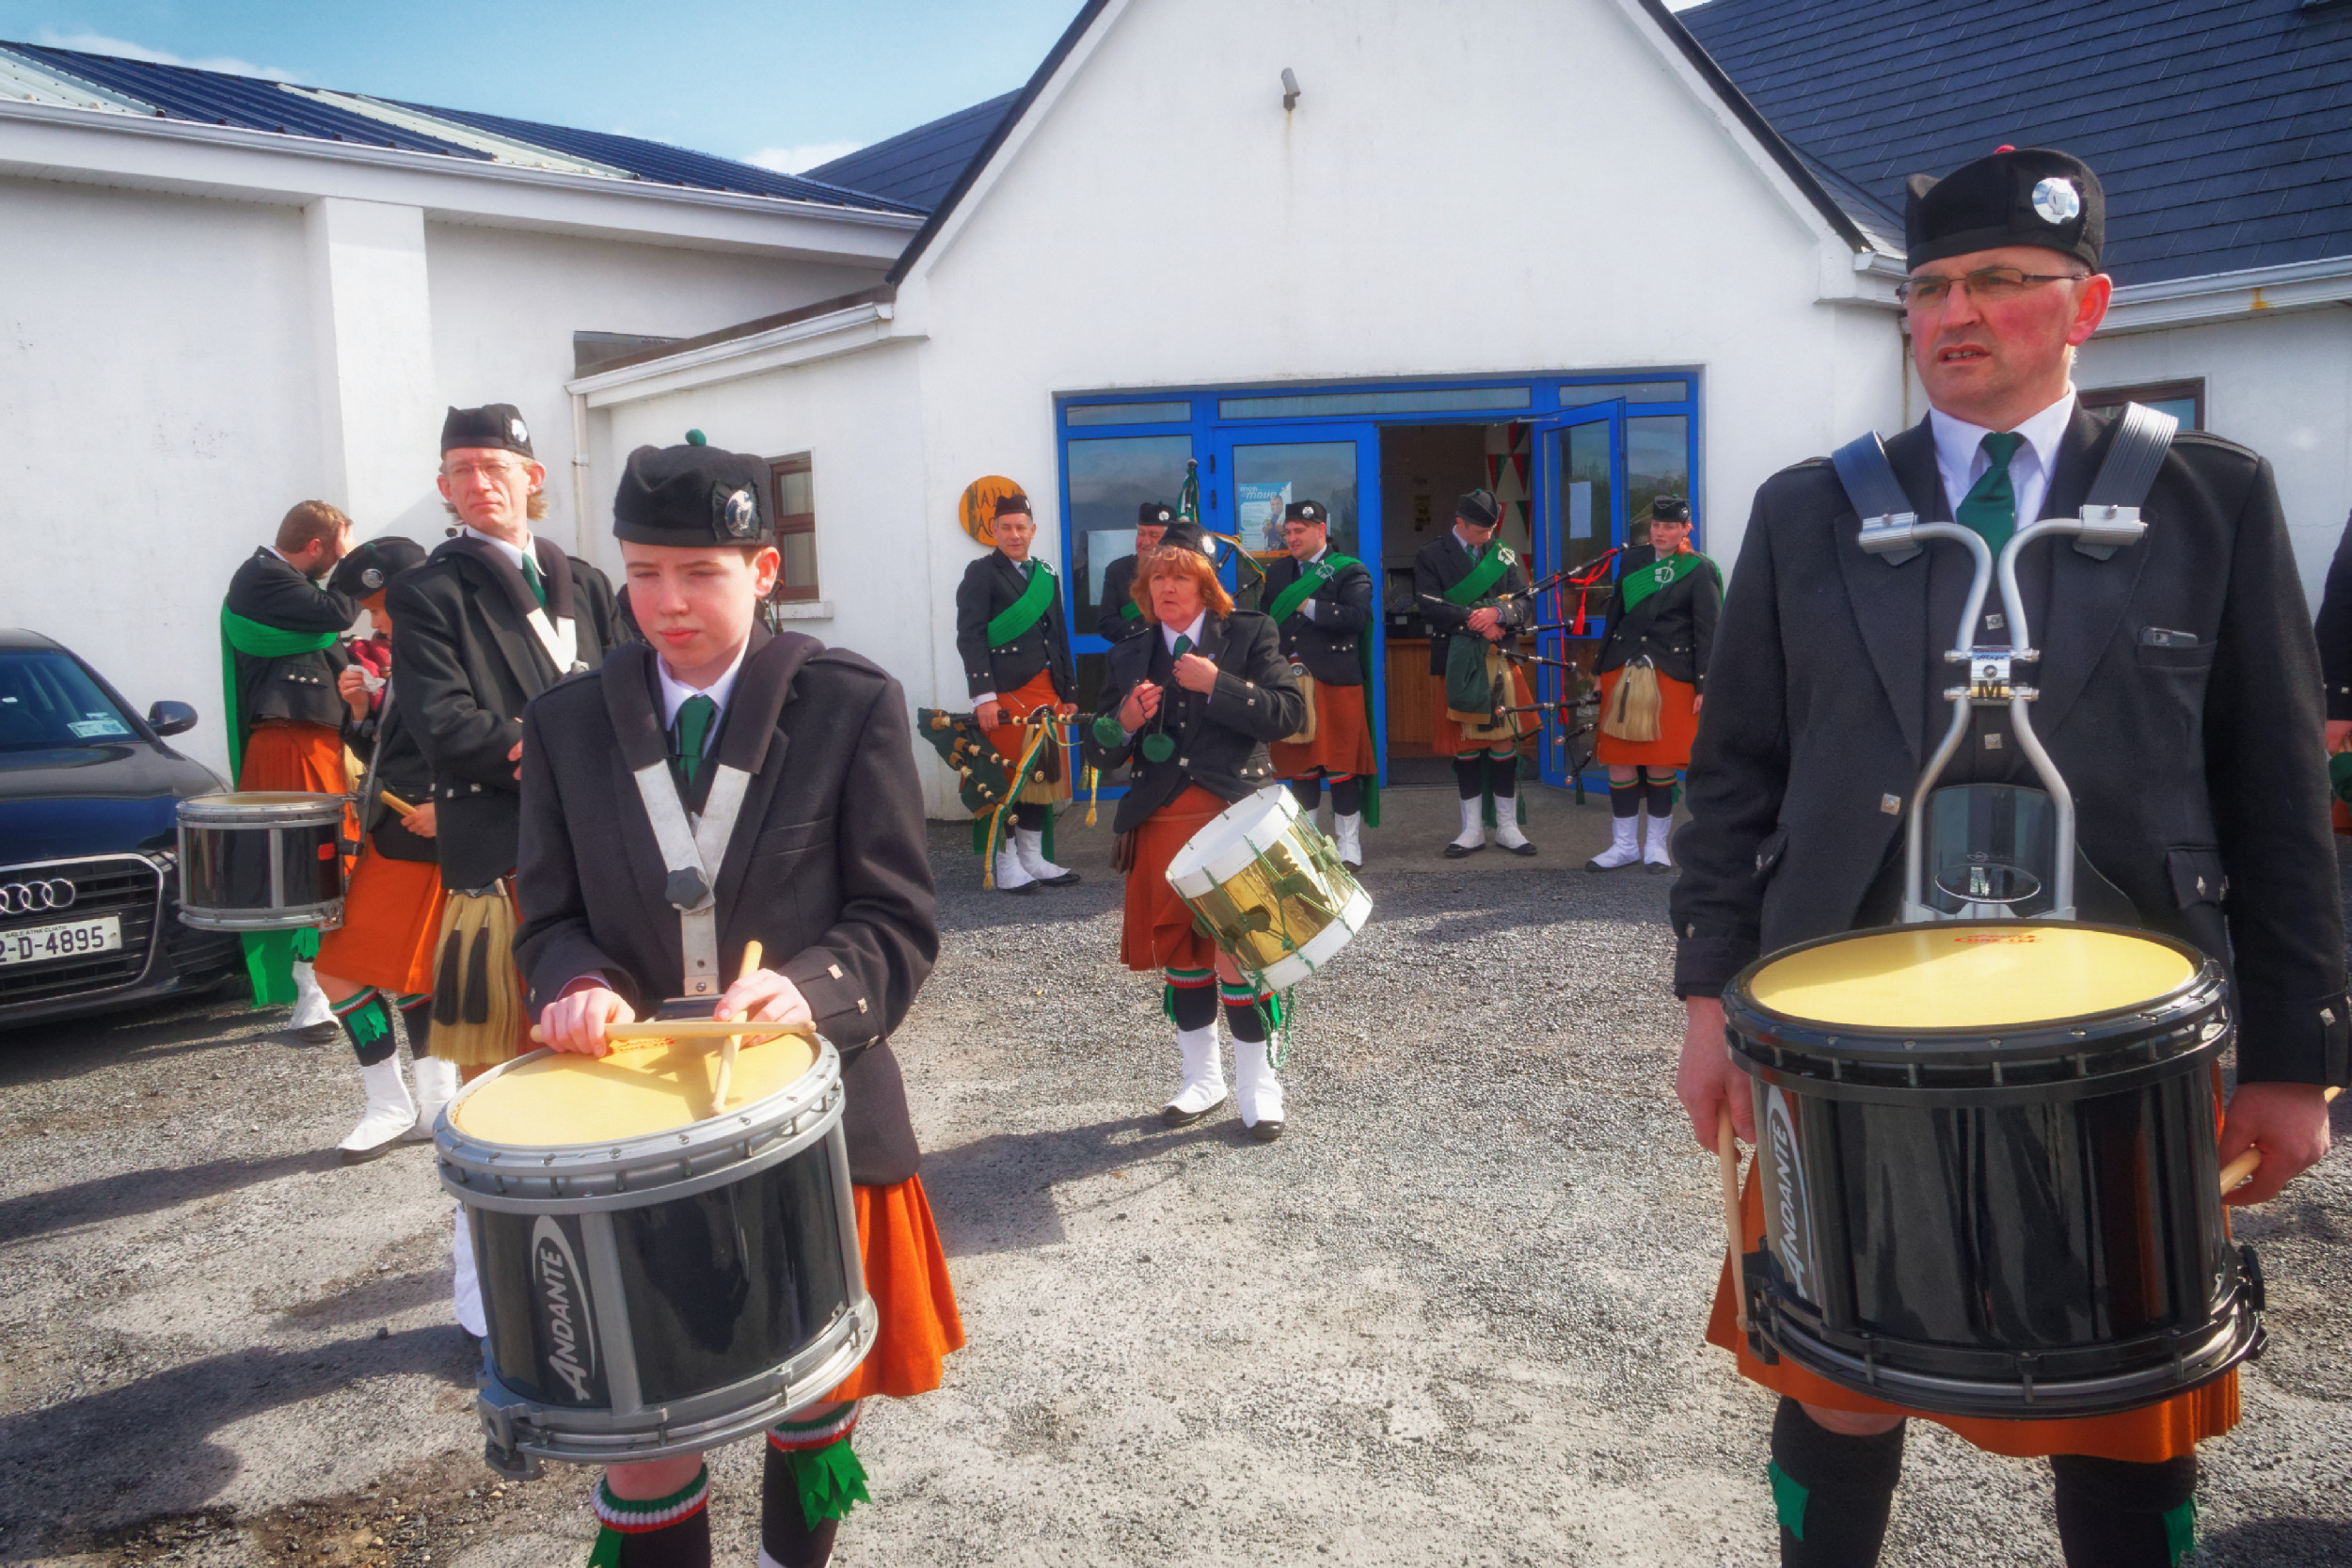 20160320131509-ie-achill-sound_parade-_DxO_13in_DxO96